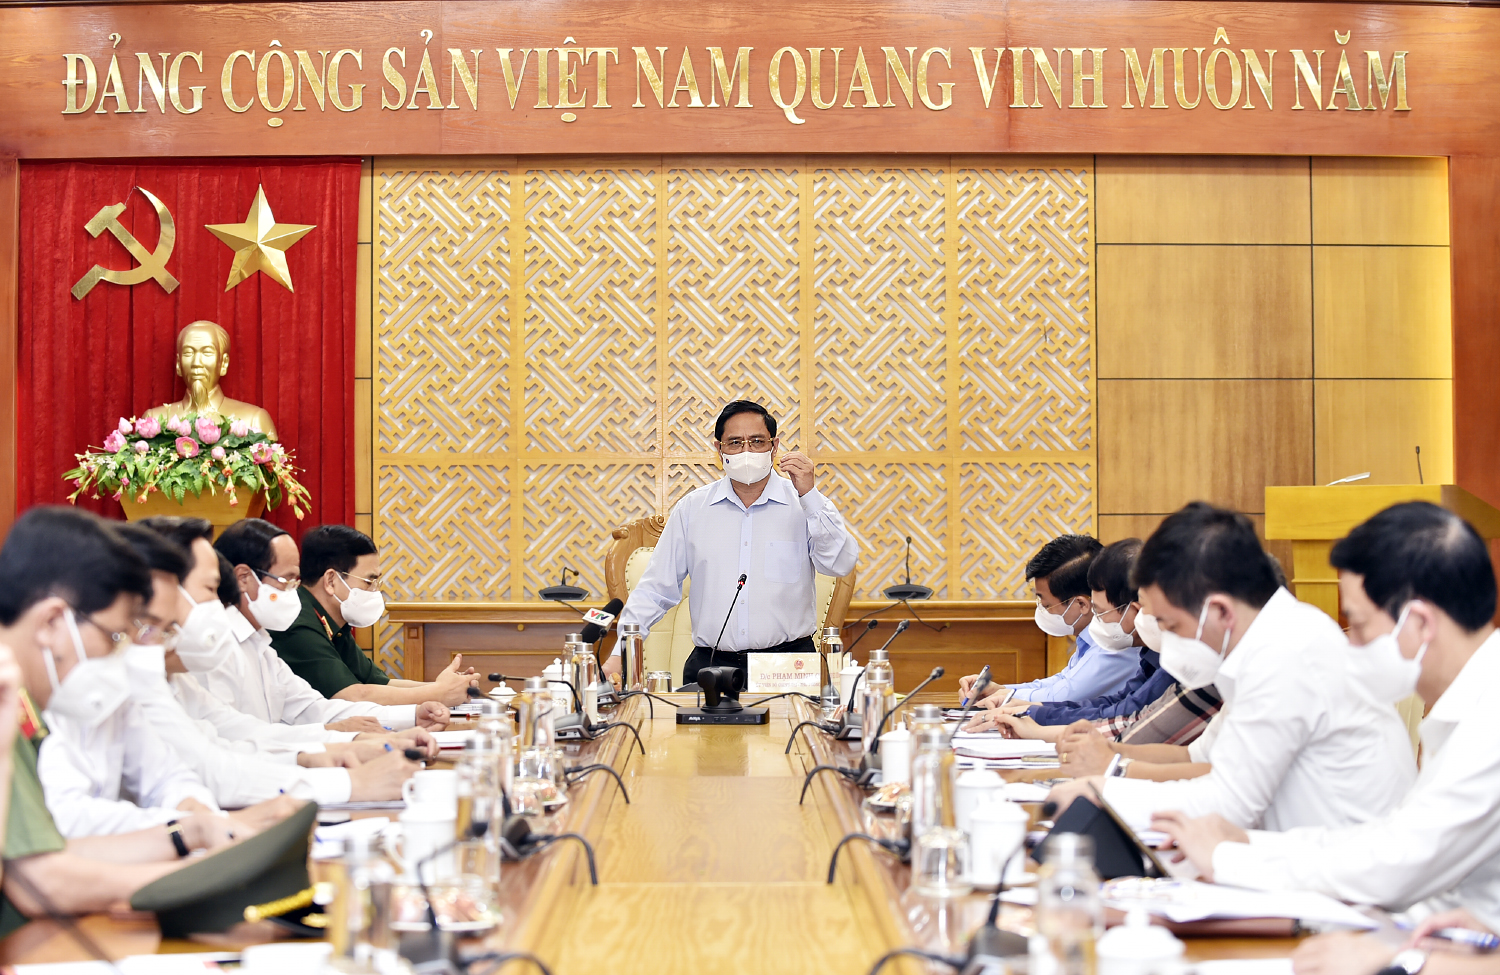 In Photos: Prime Minister encourages frontline anti-pandemic forces in Bac Giang